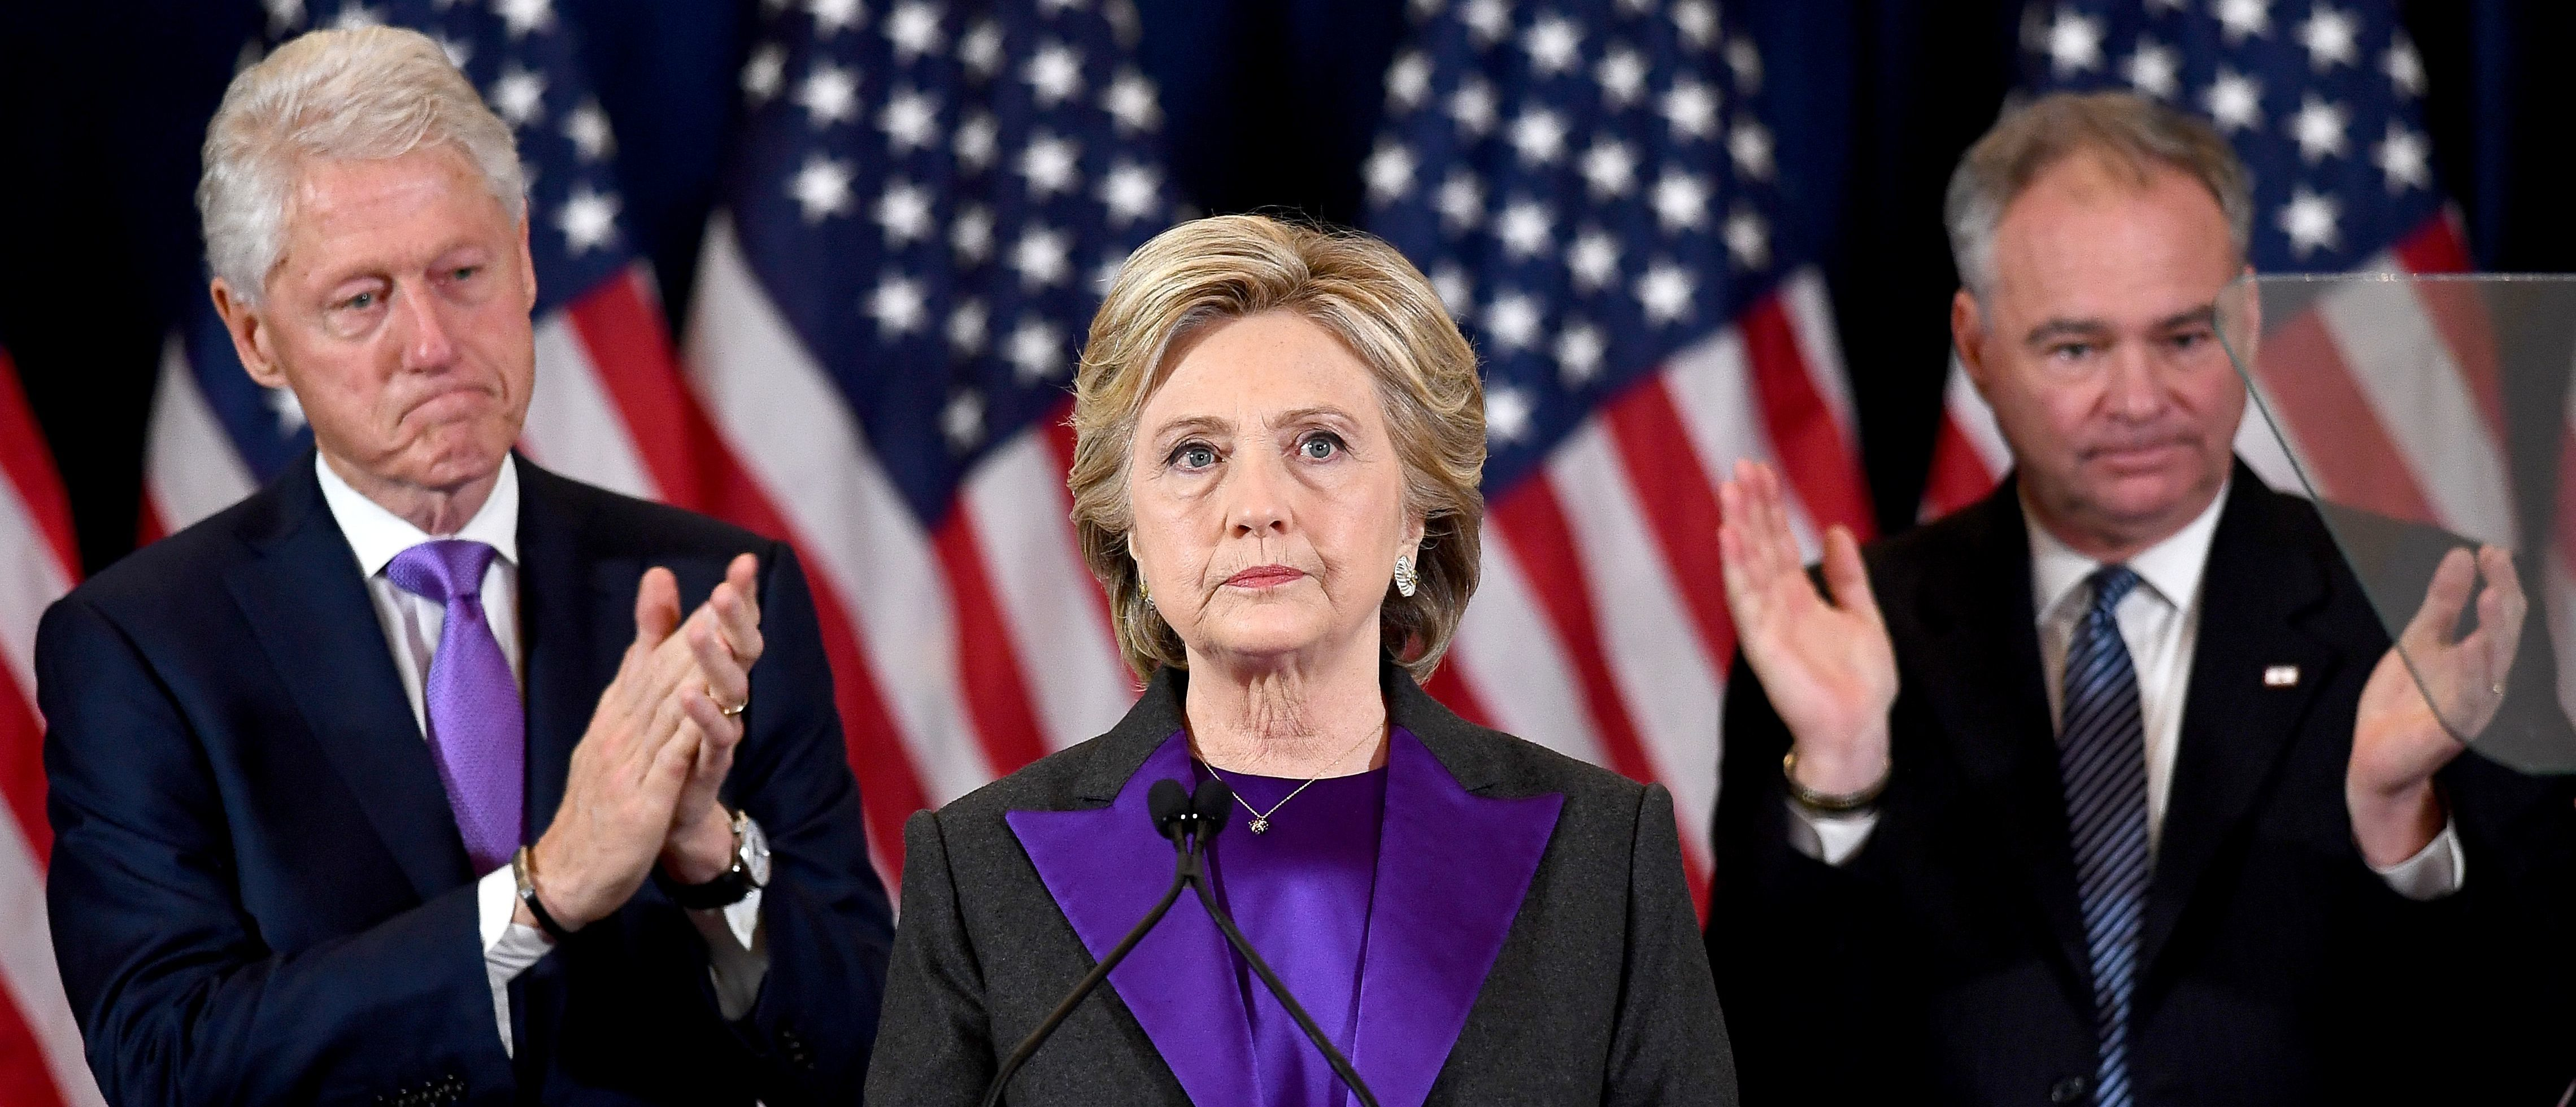 Clinton Foundation Continues To Hemorrhage Money Following Hillary's Loss